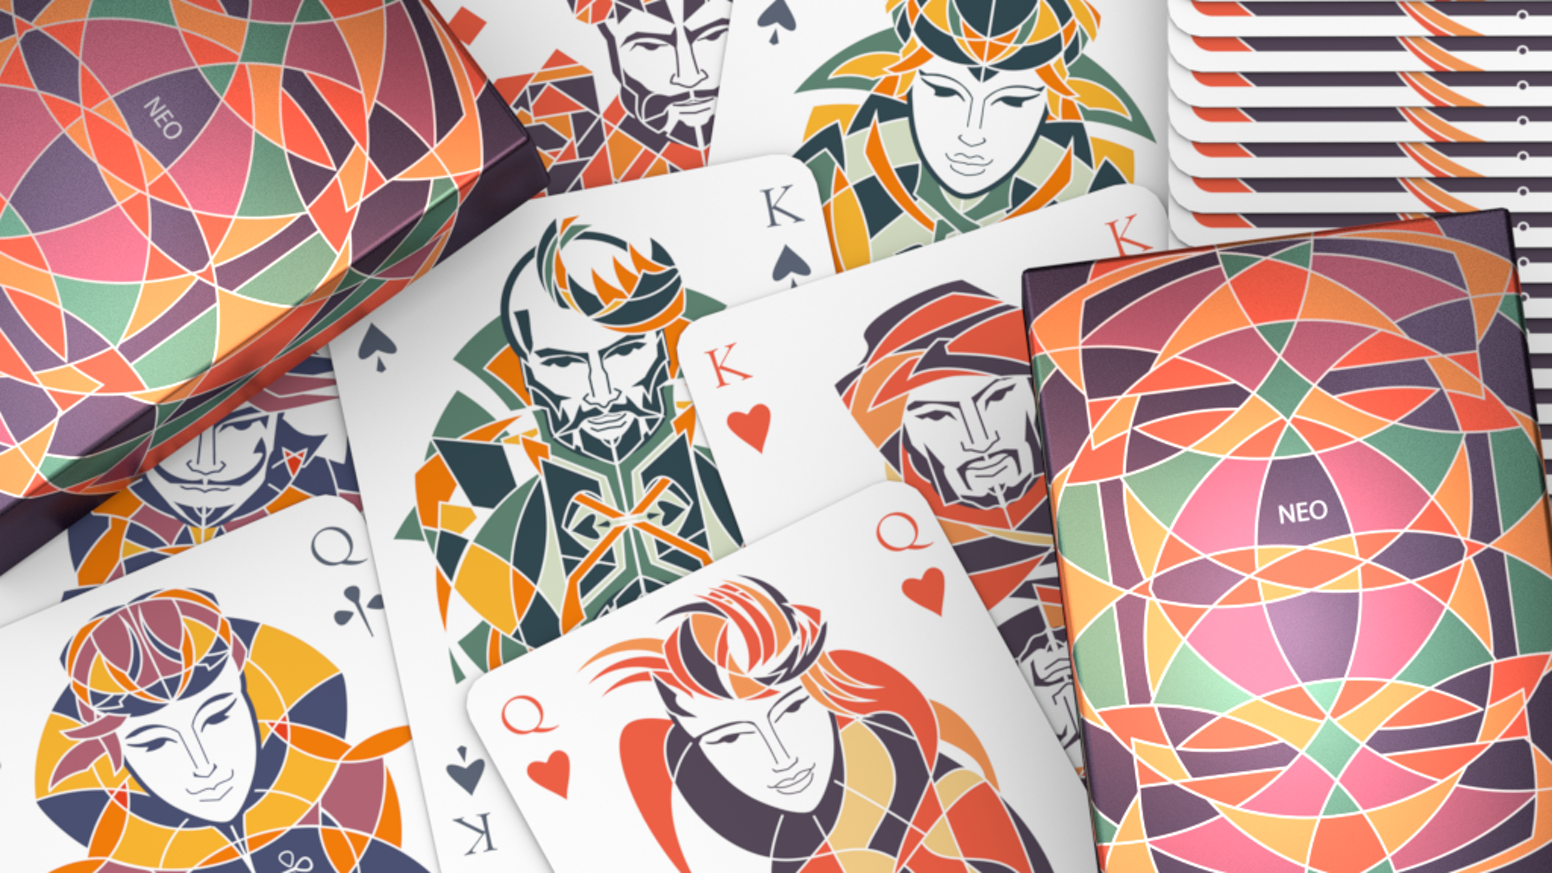 Modern and colorful playing cards. Printed by USPCC*